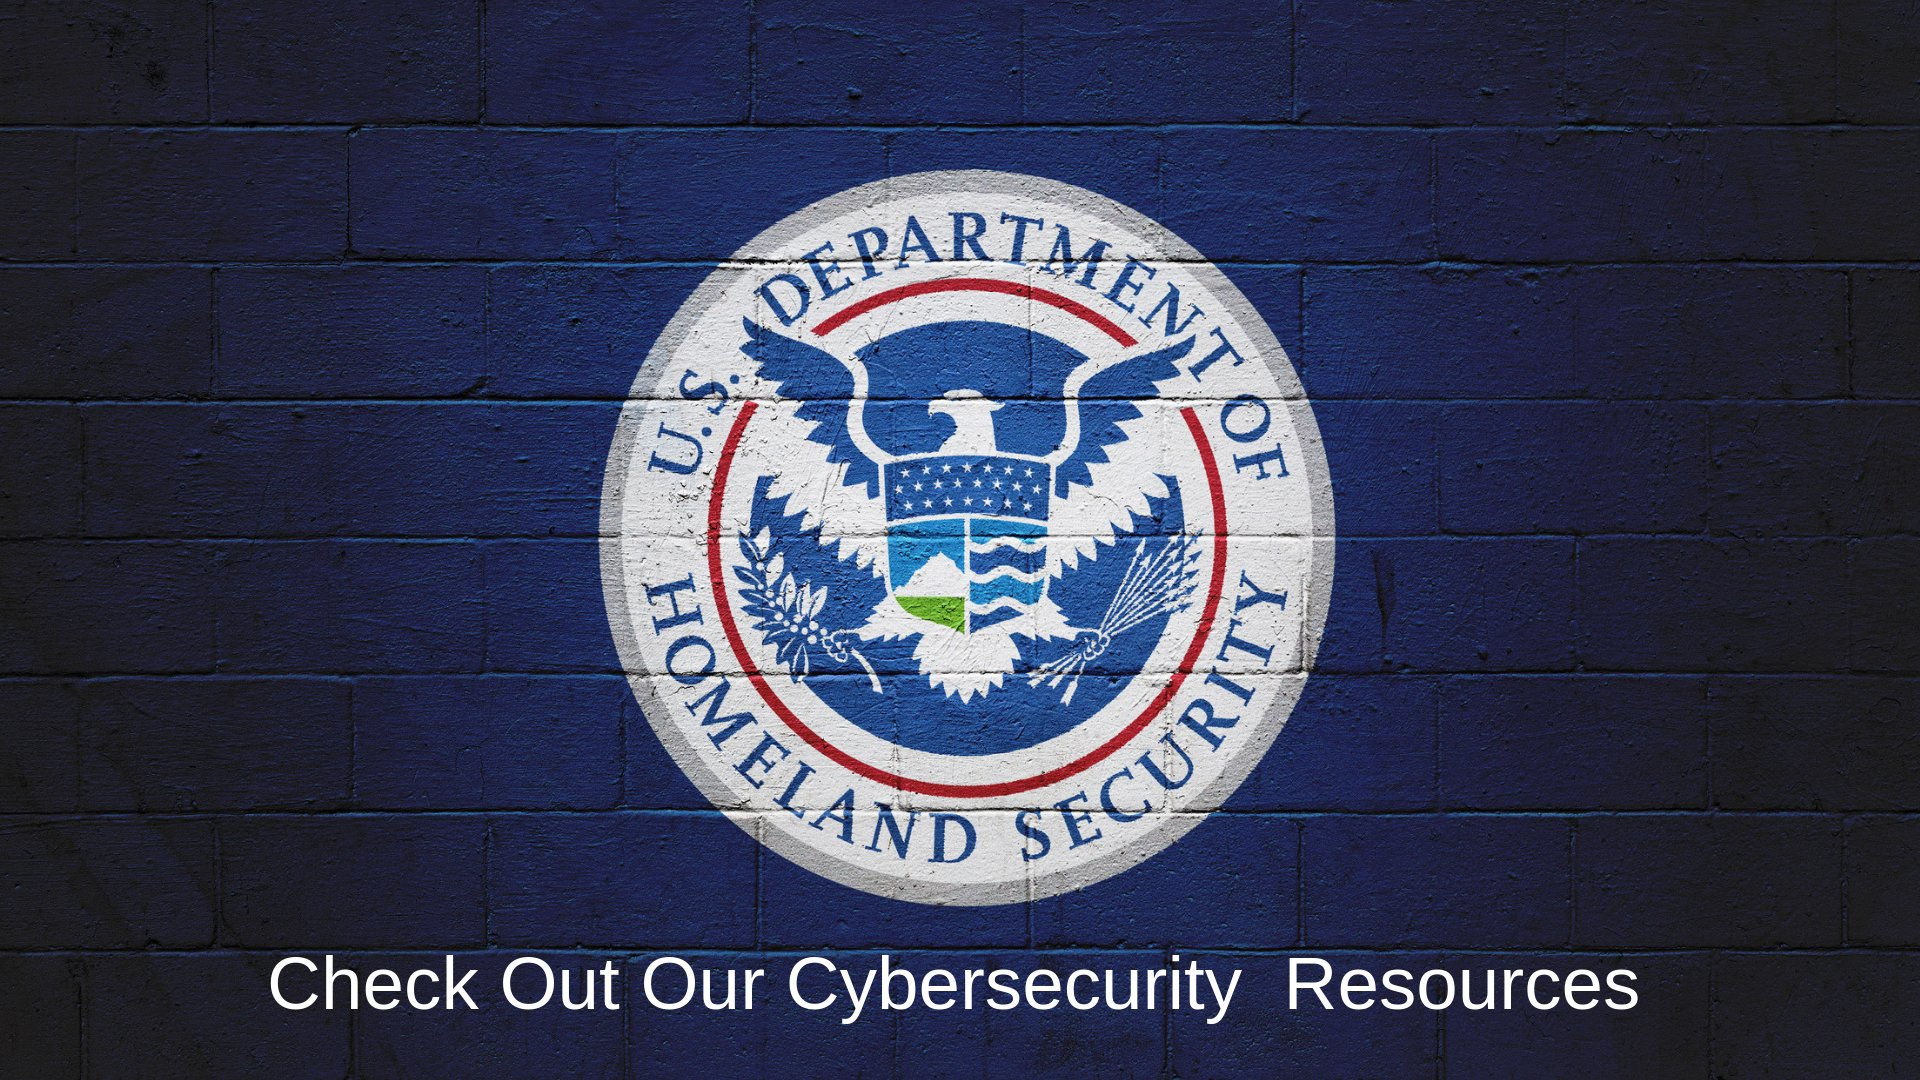 Check Out Our Cybersecurity Resources